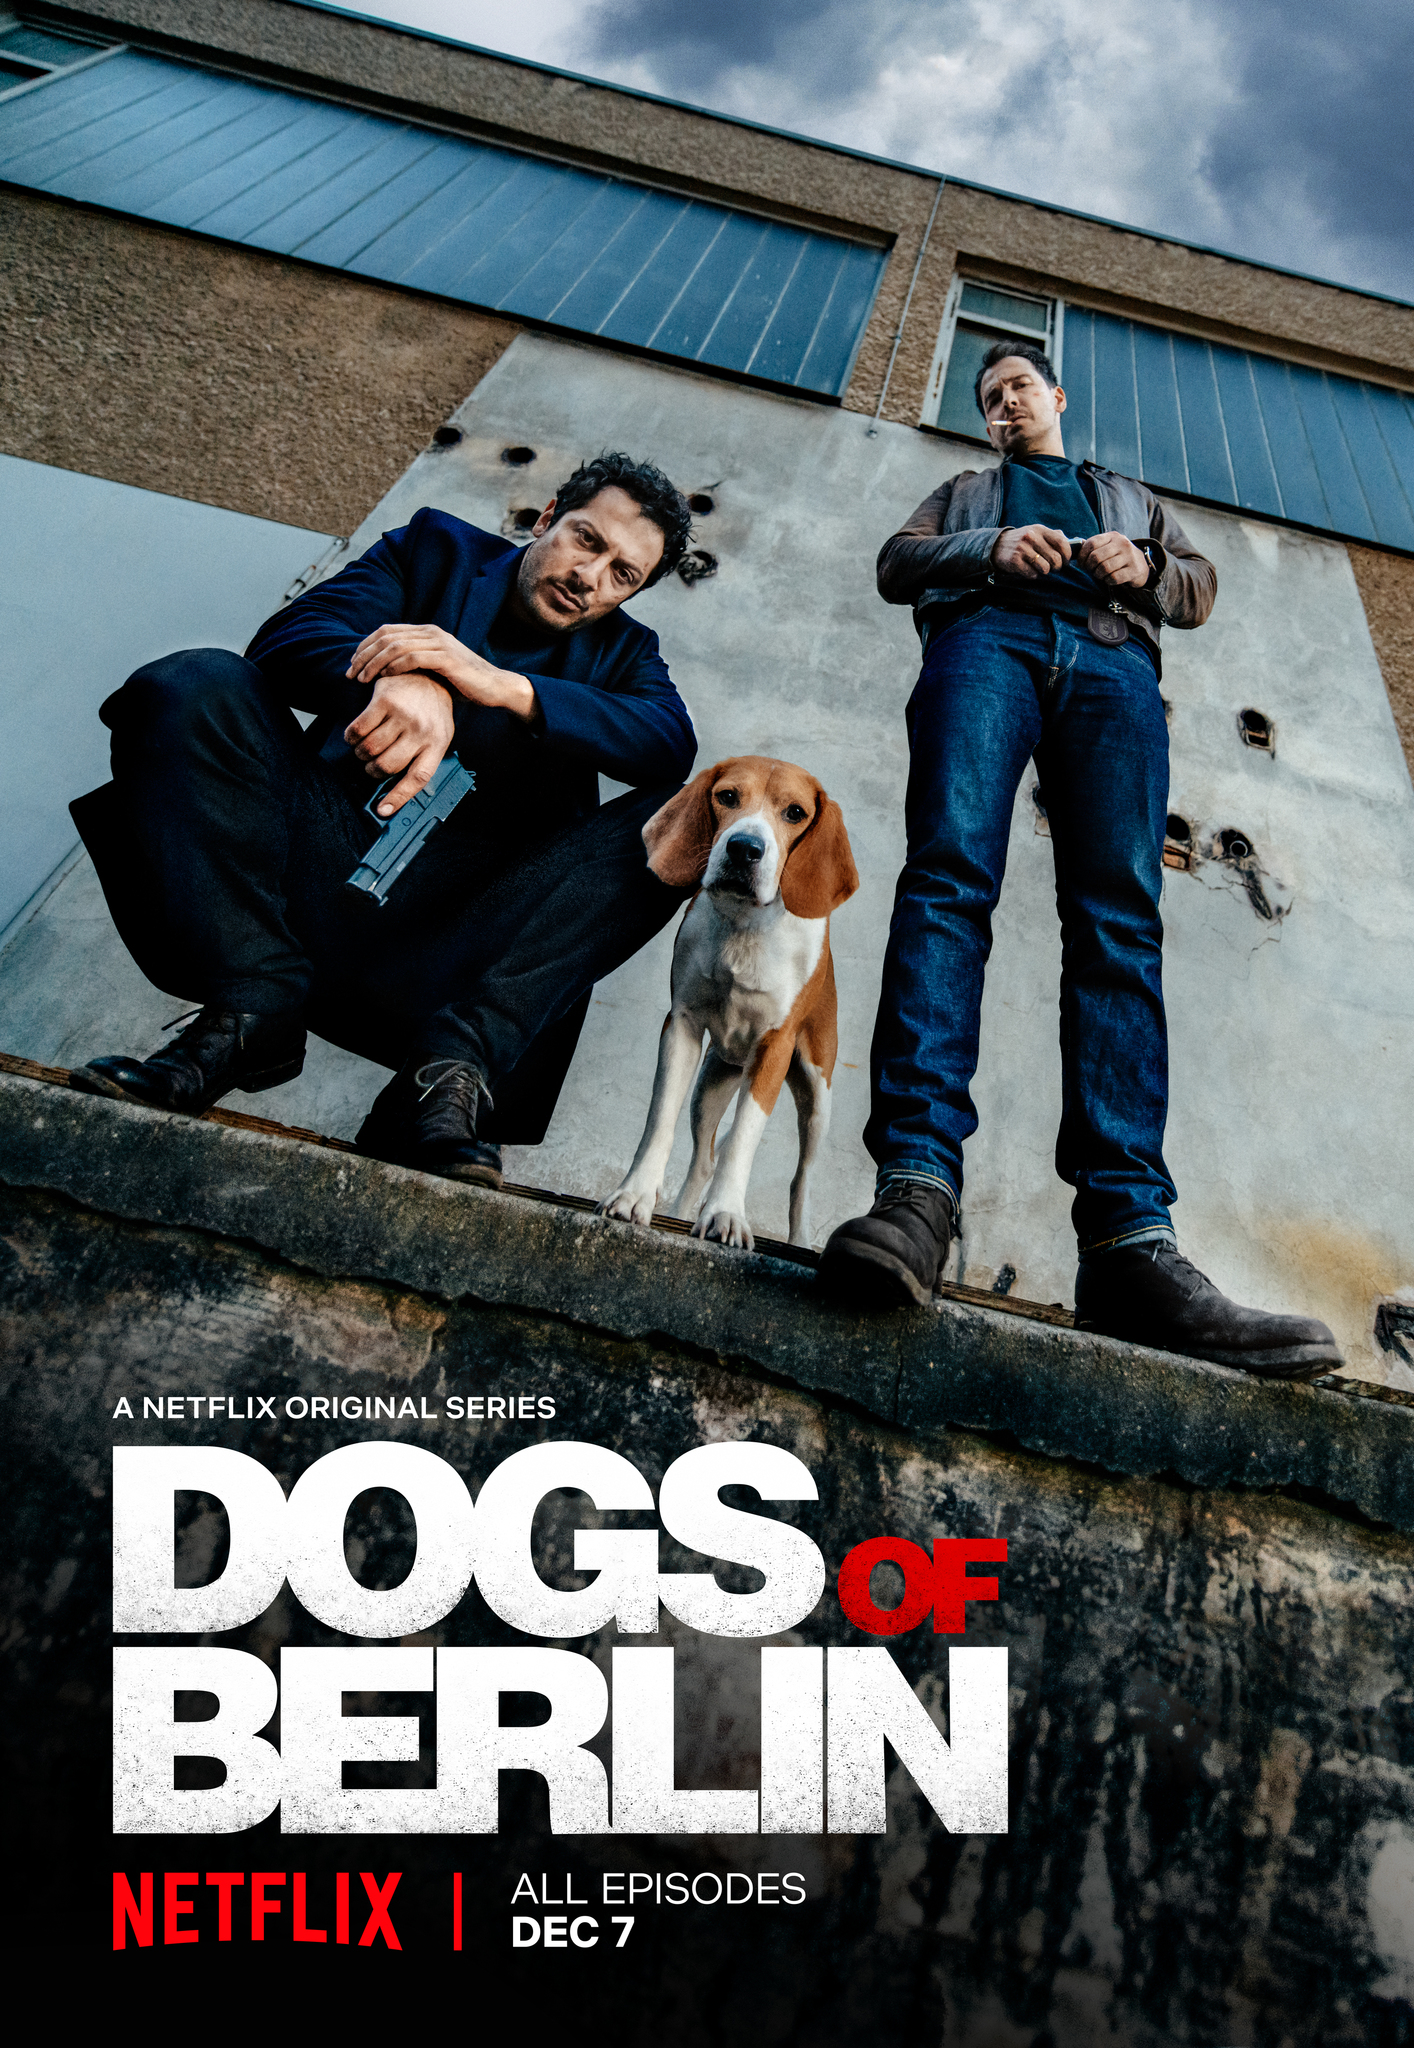 Berlyno šunys (1 Sezonas) / Dogs of Berlin Season 1 online